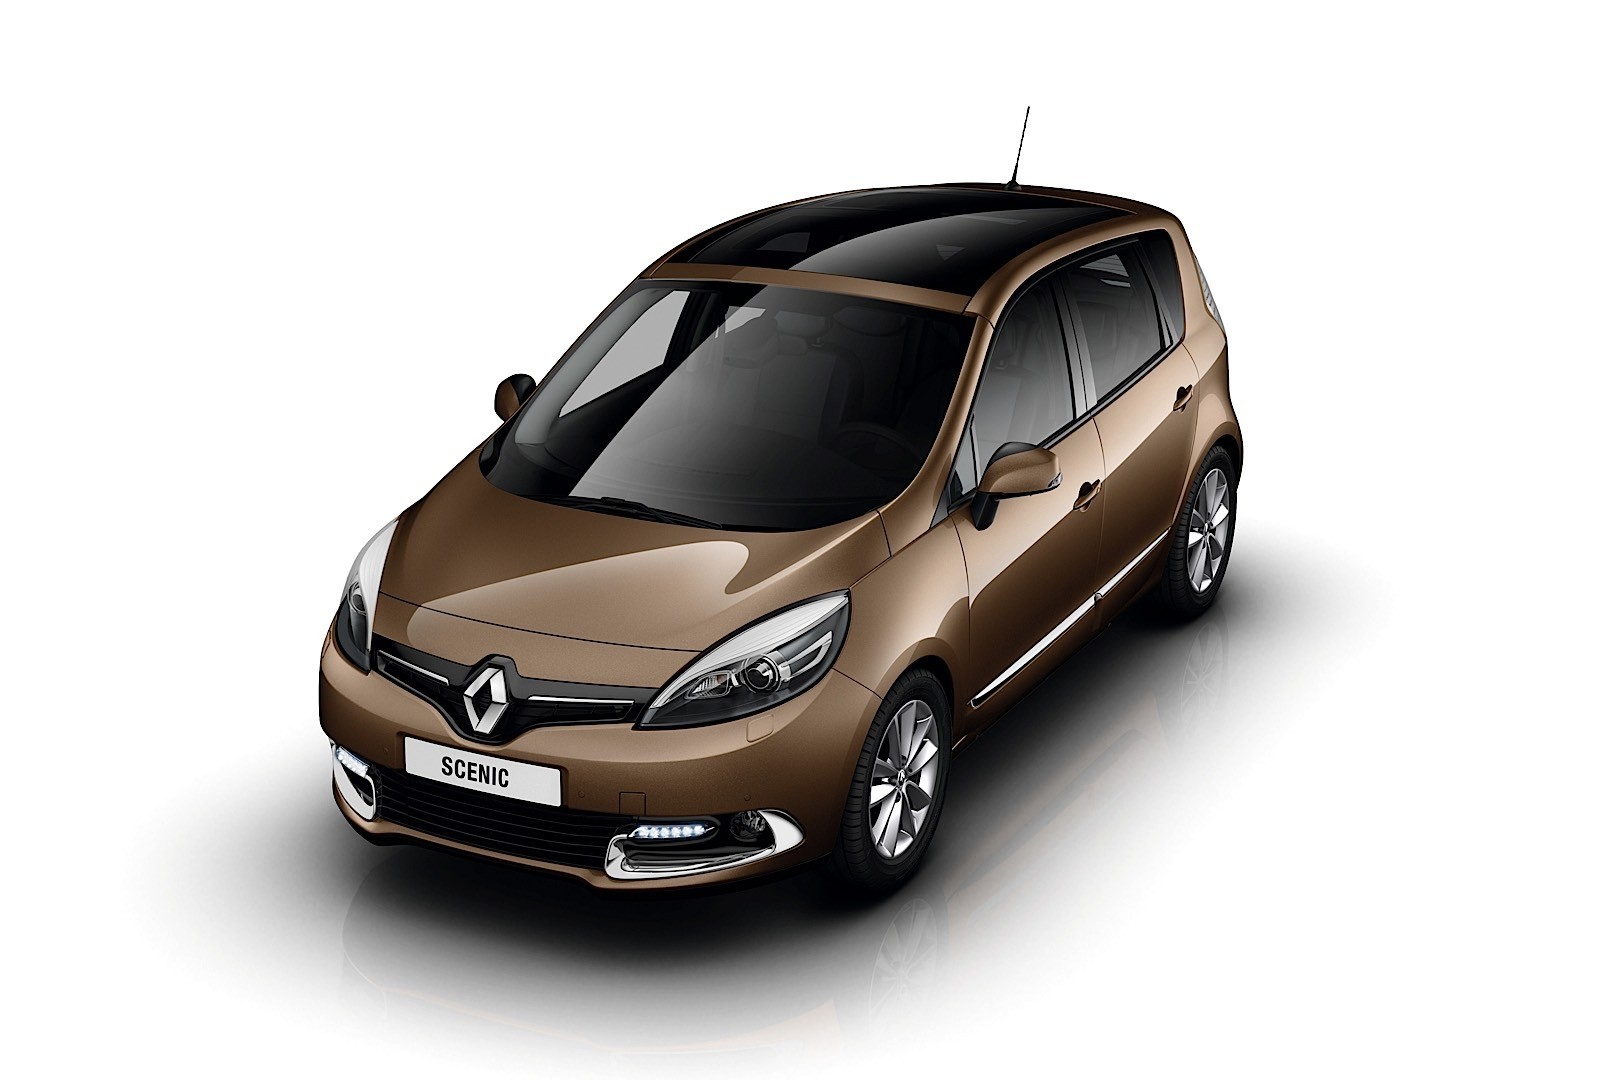 renault scenic specs photos 2013 2014 2015 2016. Black Bedroom Furniture Sets. Home Design Ideas